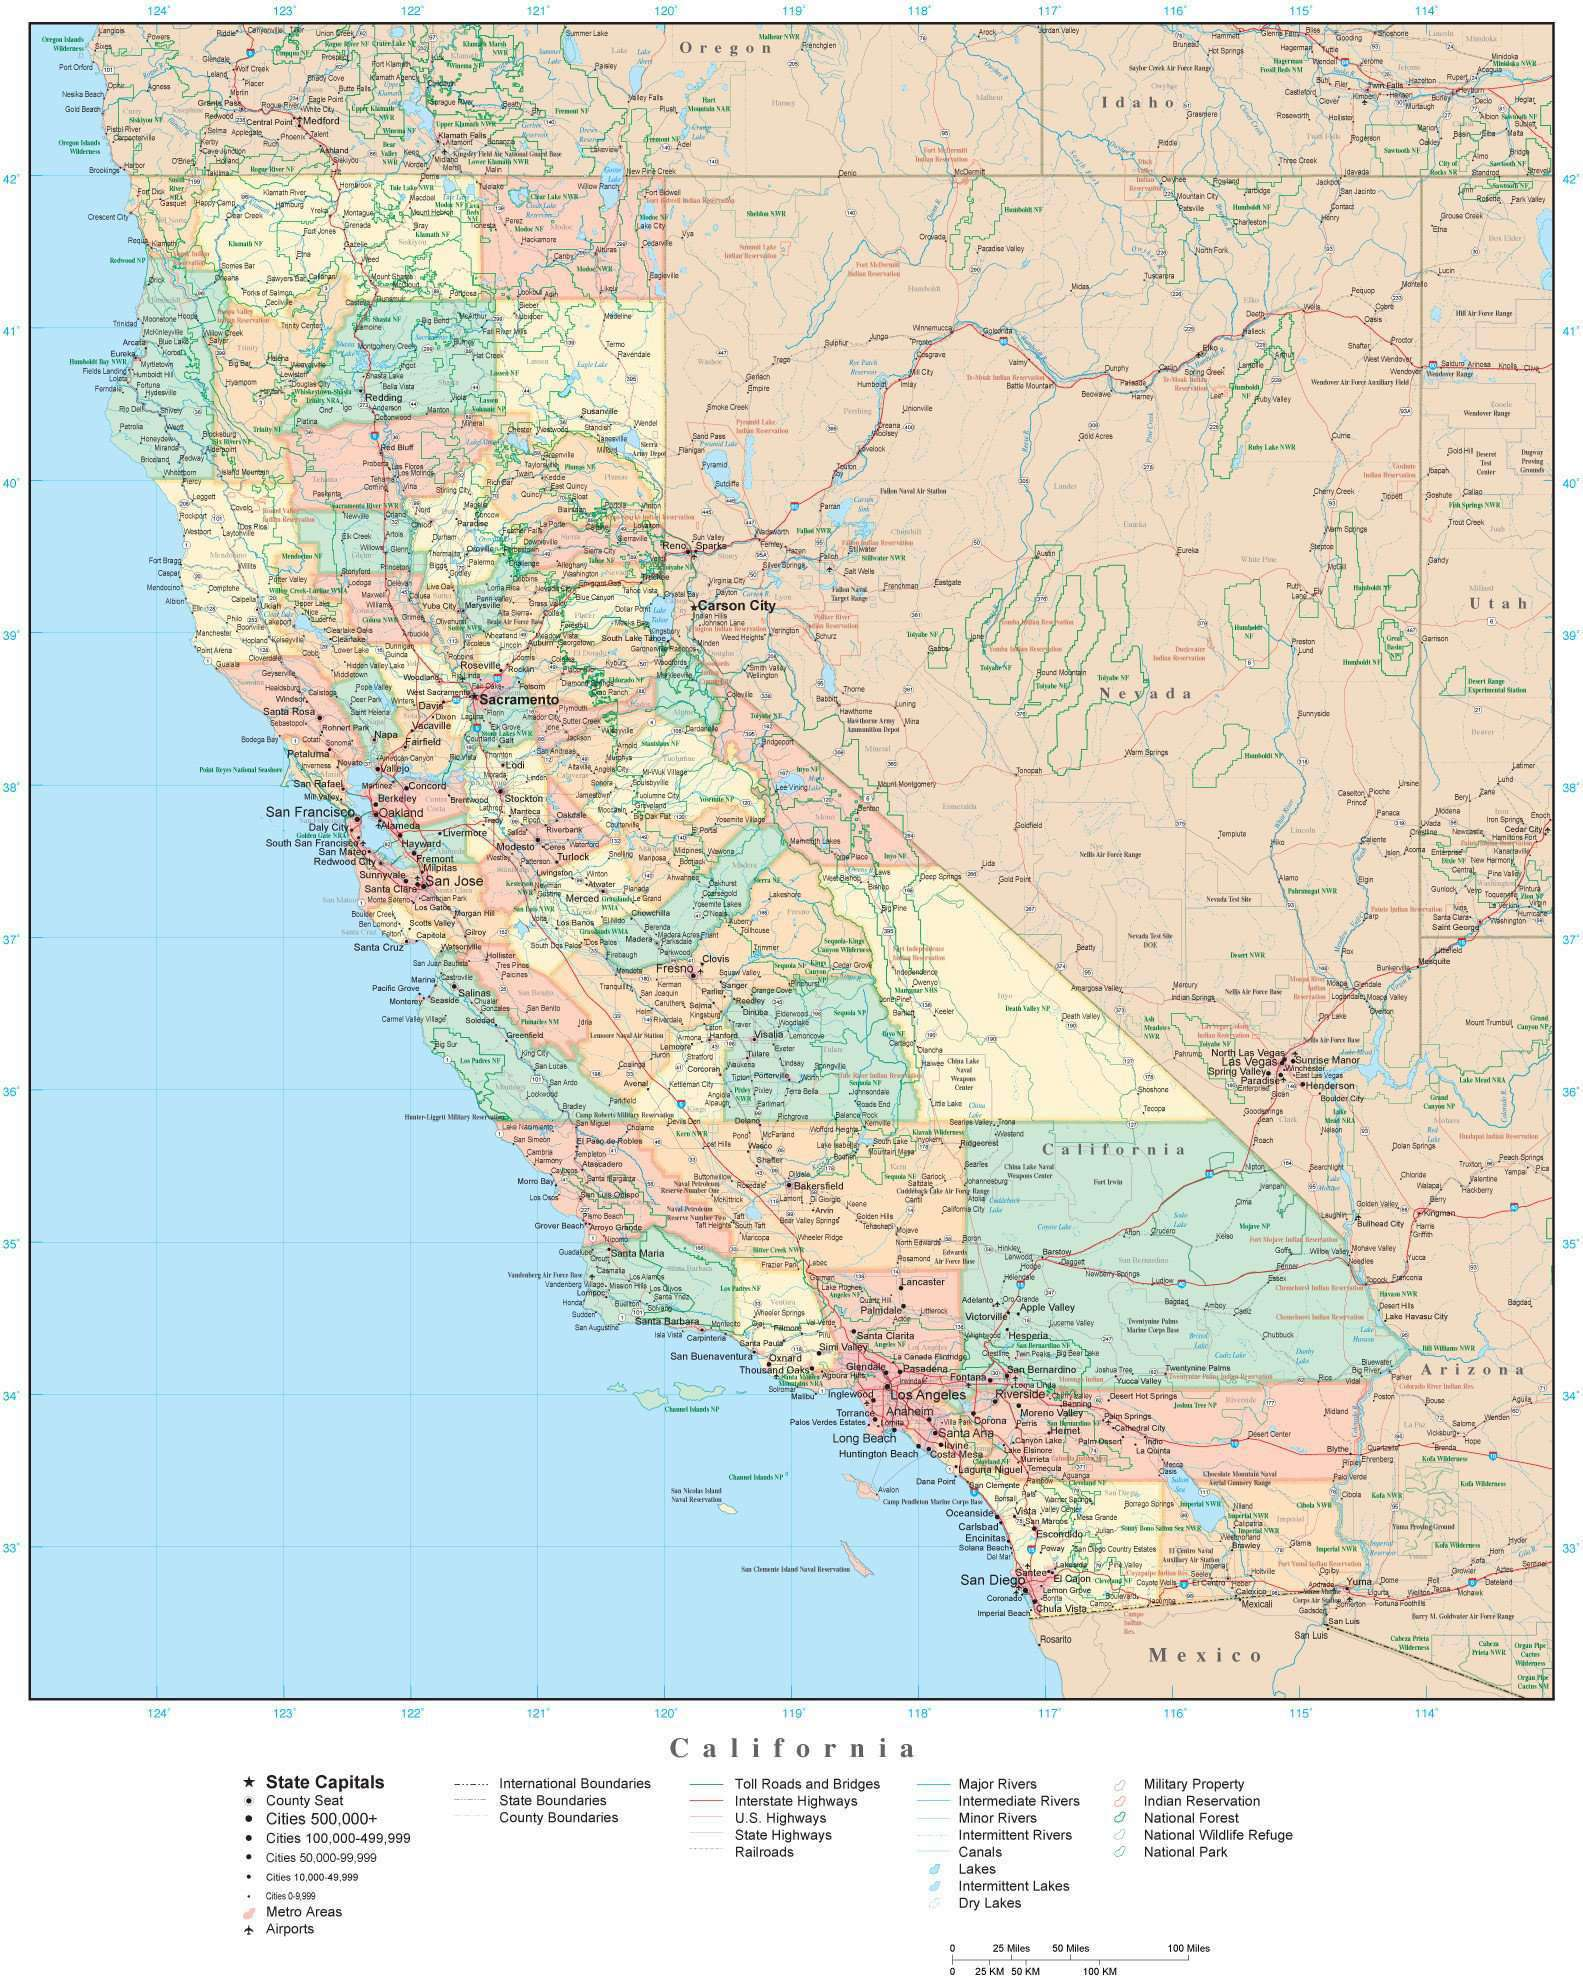 Detailed California Digital Map with Counties, Cities, Highways, Railroads,  Airports, National Parks and more